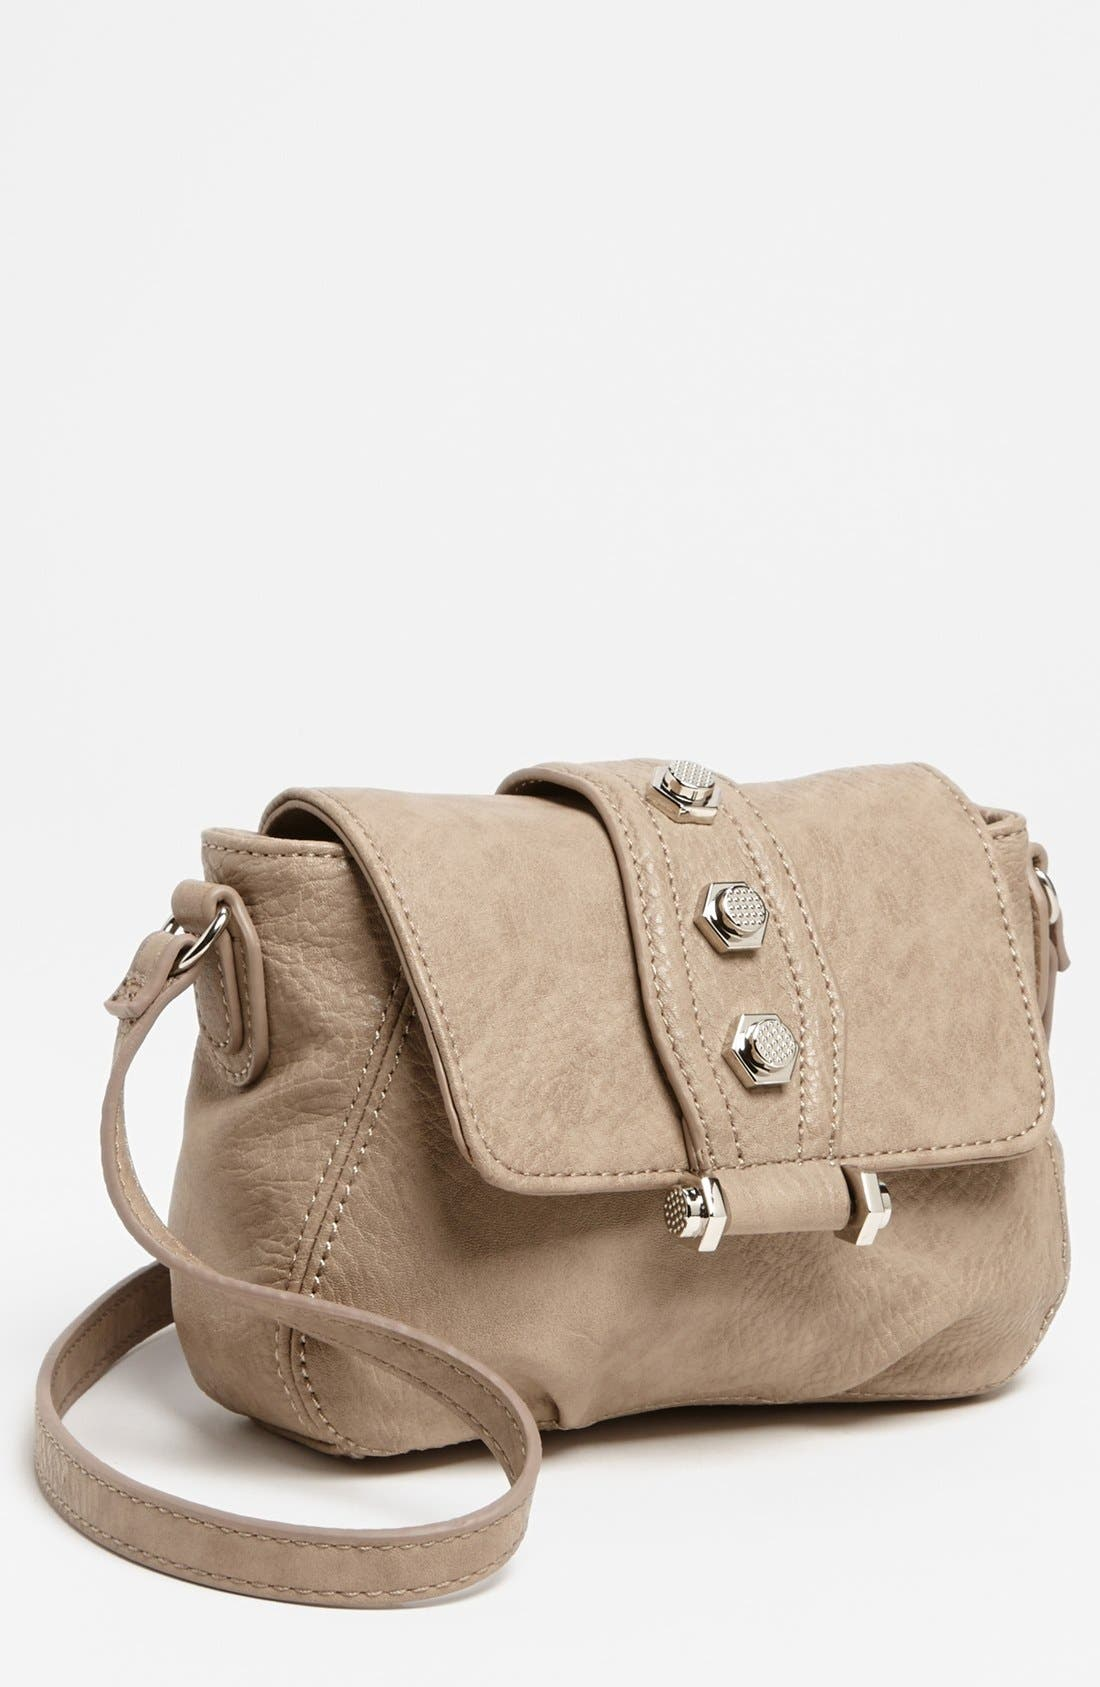 Main Image - Danielle Nicole 'Rocco' Crossbody Bag